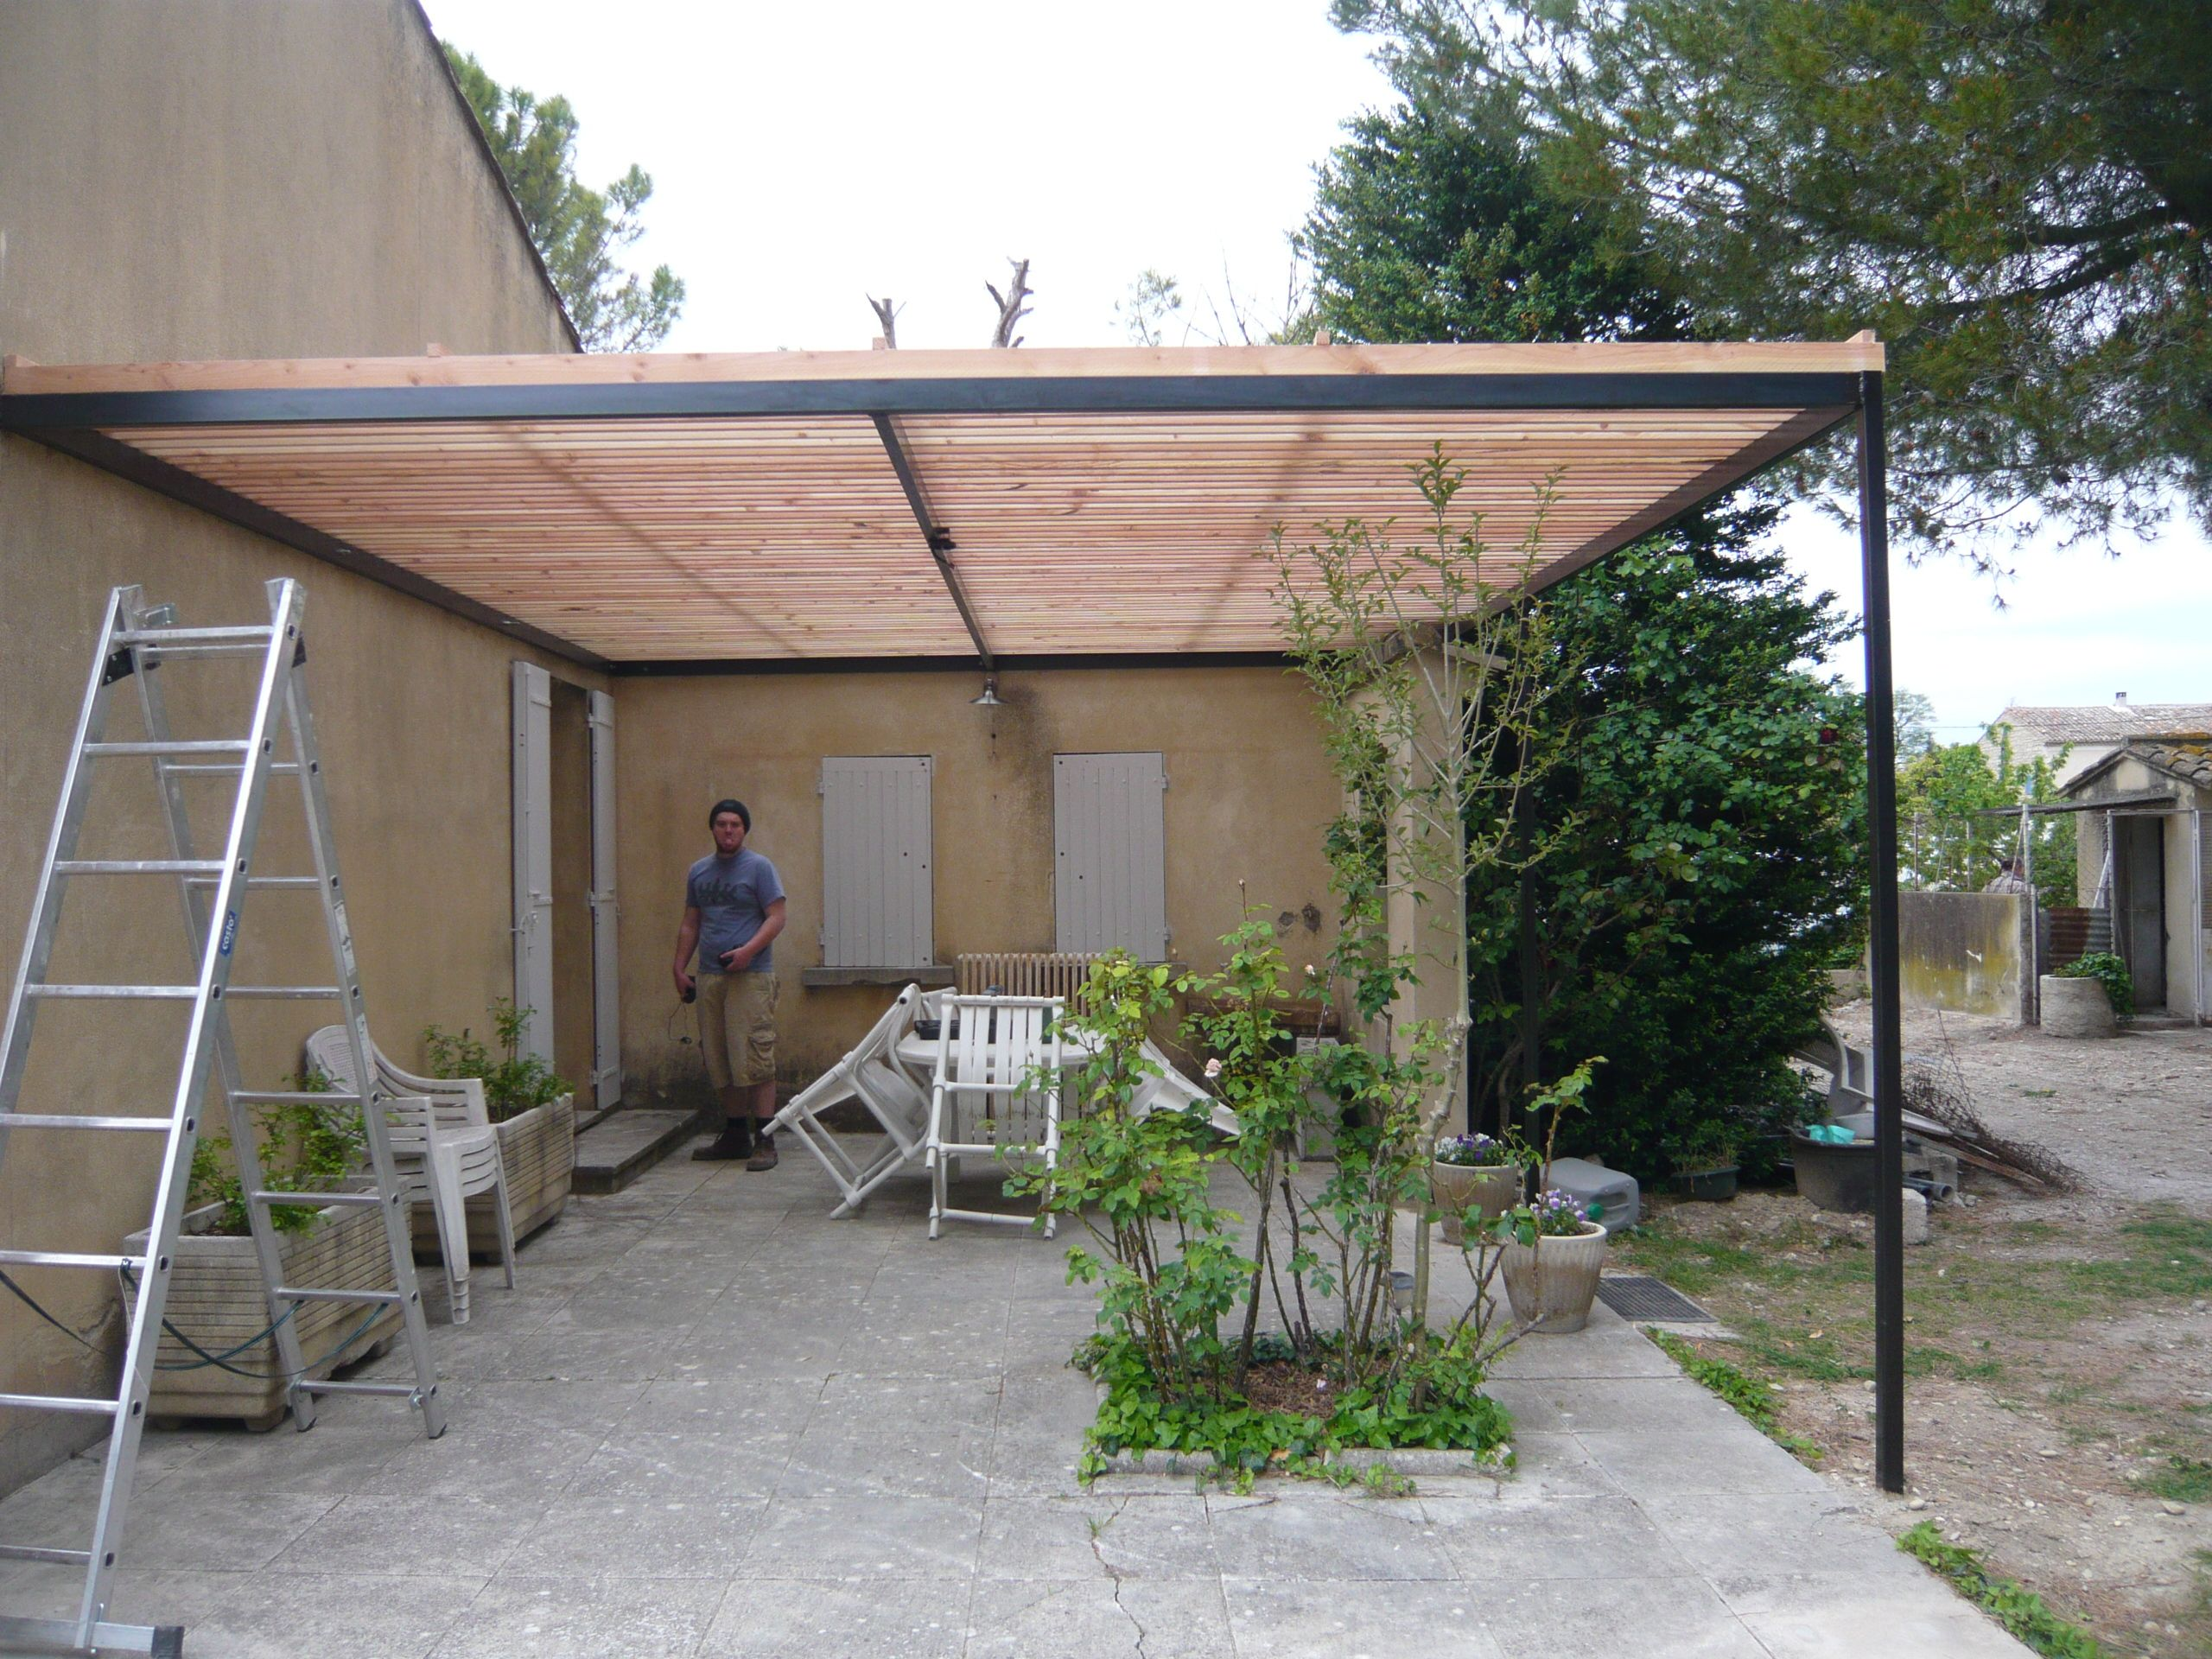 Pergola bois m tal instructions de montage do it yourself for Monter des volets en bois